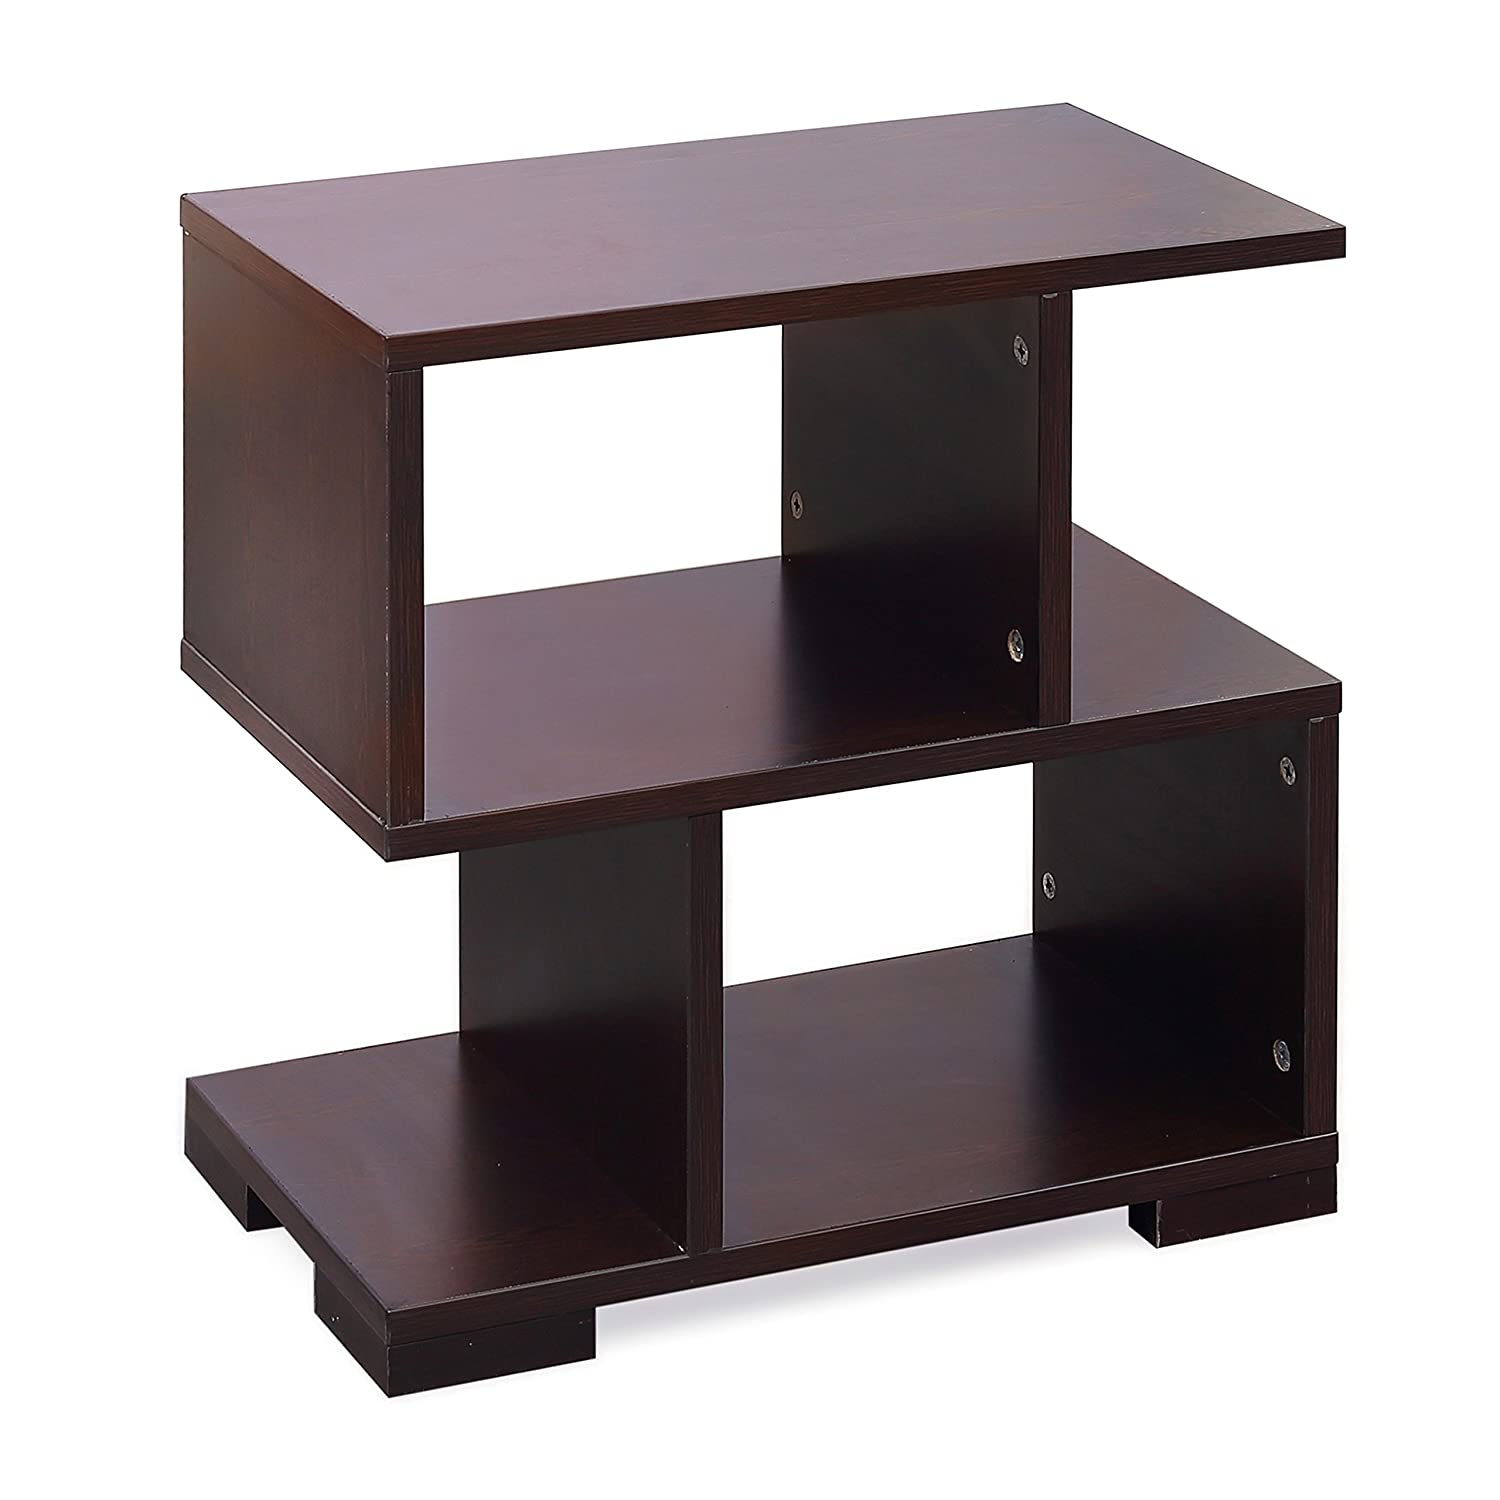 forzza daniel side table (matt finish wenge) amazonin home  - forzza daniel side table (matt finish wenge) amazonin home  kitchen